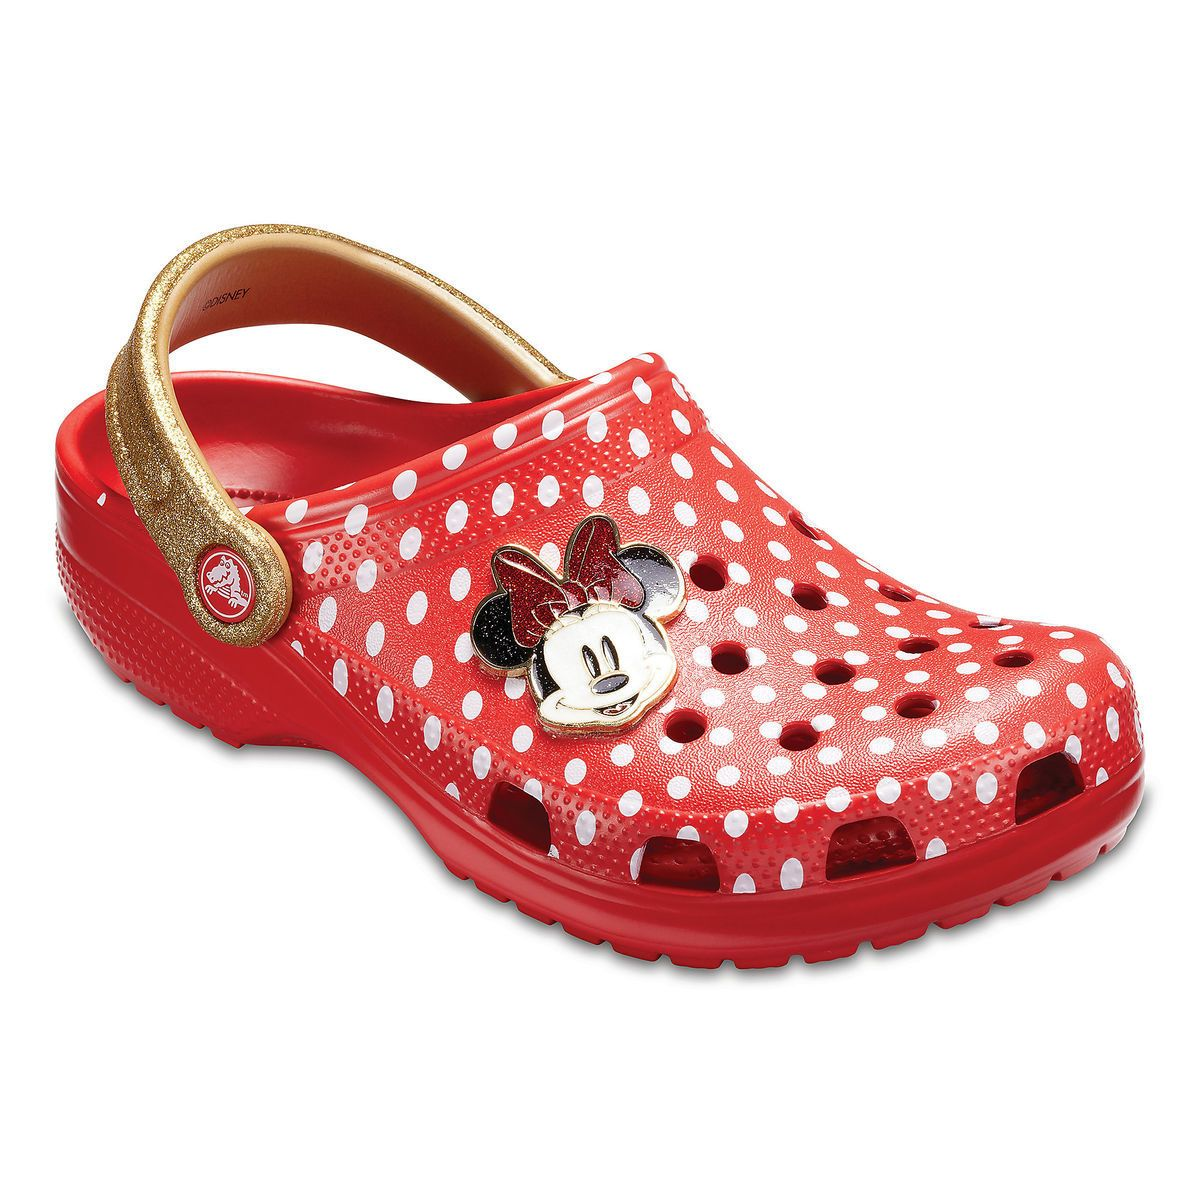 Minnie Mouse Classic Clogs for Women by